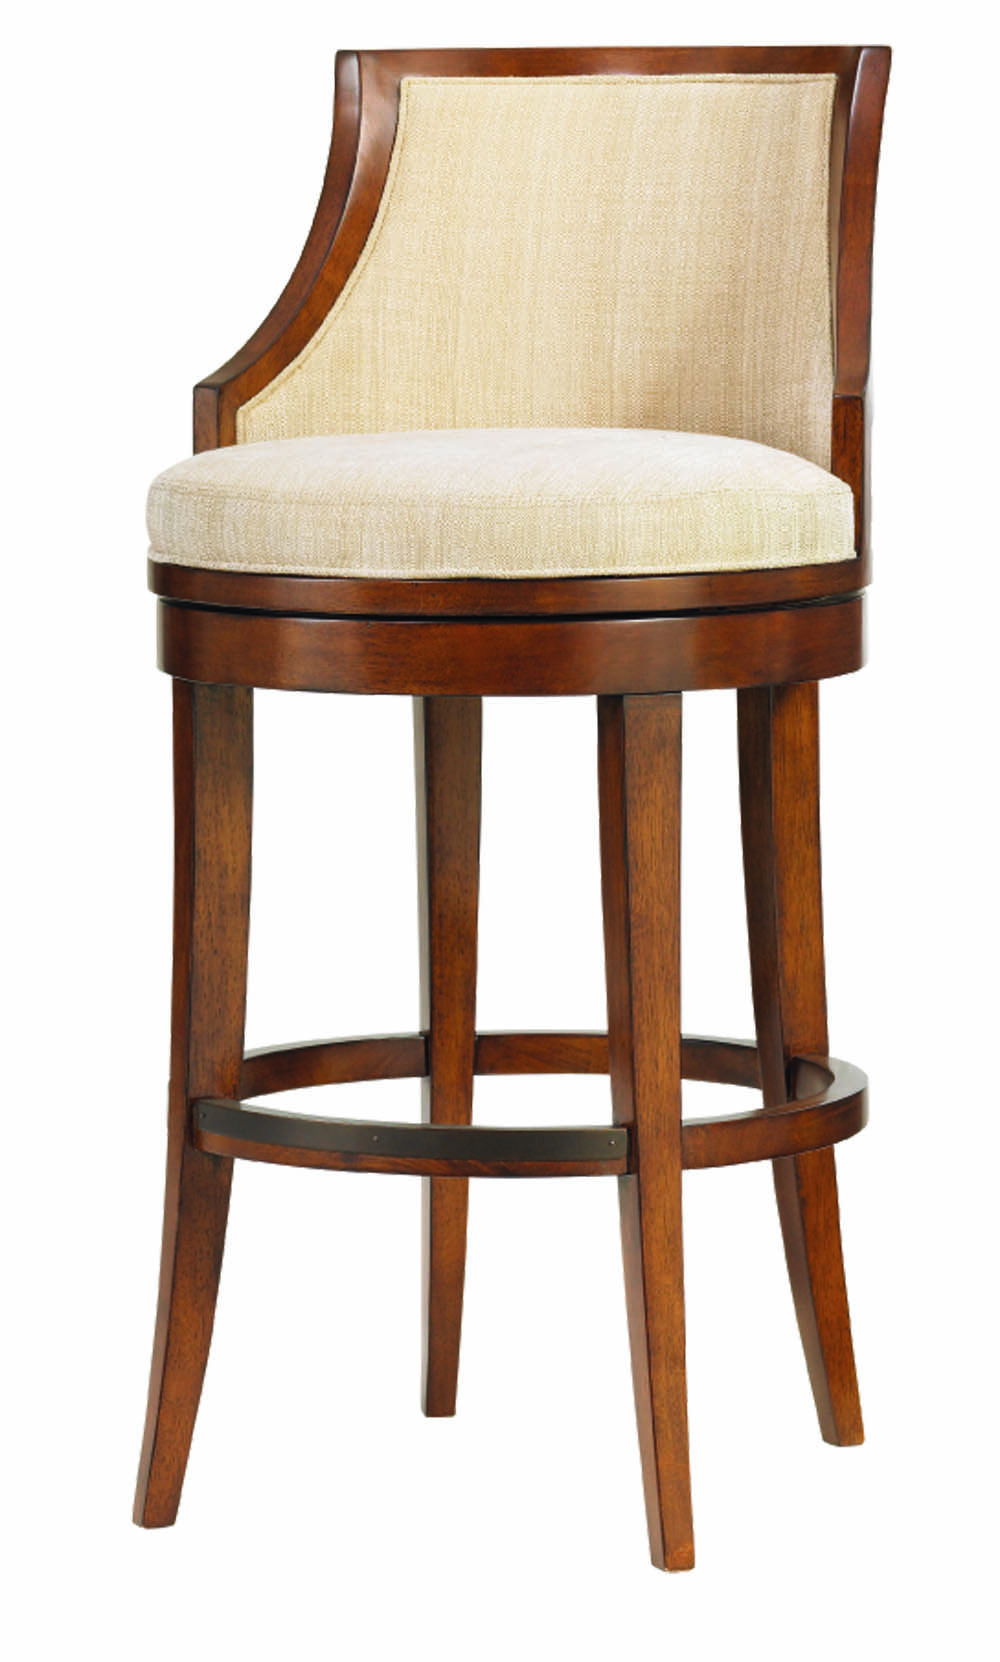 Tommy Bahama Ocean Club Cabana Swivel Bar Stool SALE Ends